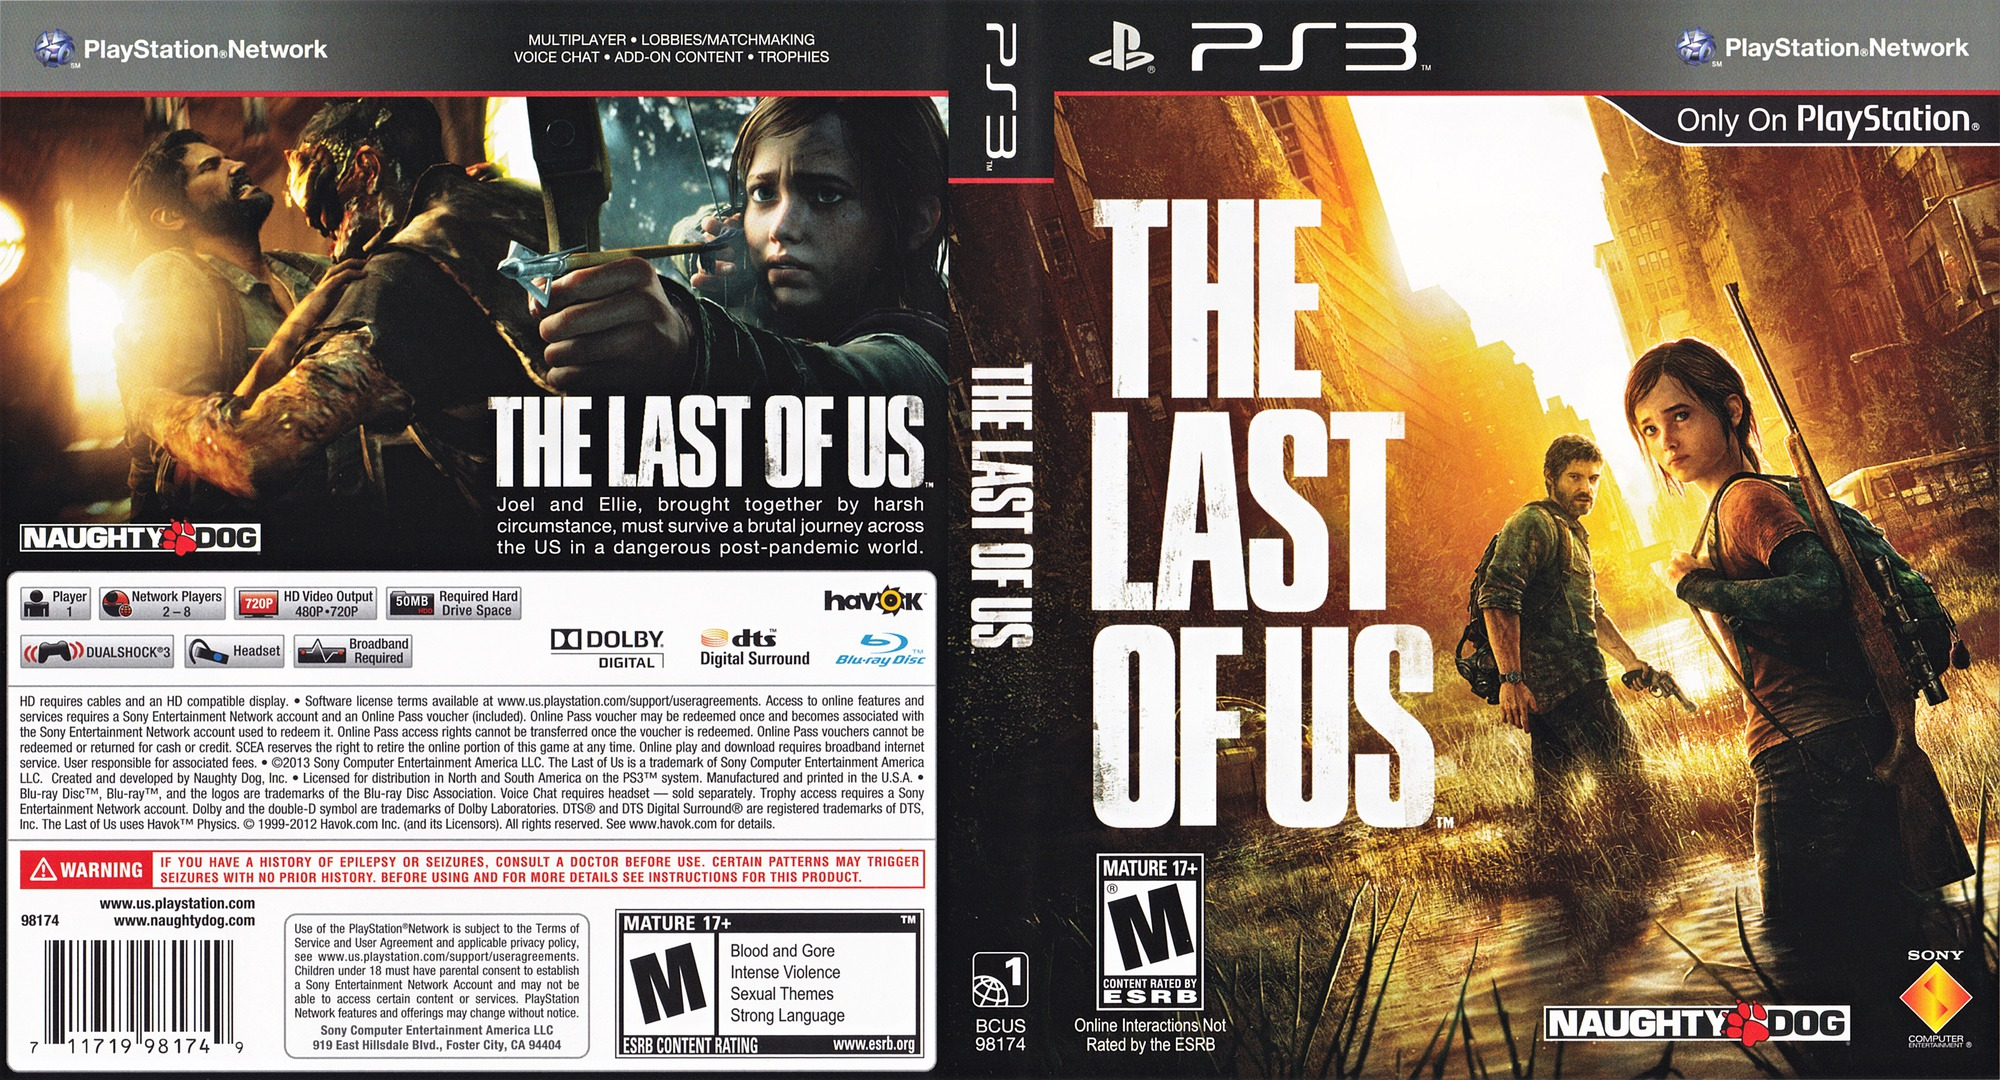 The Last of US PS3 coverfullHQ (BCUS98174)